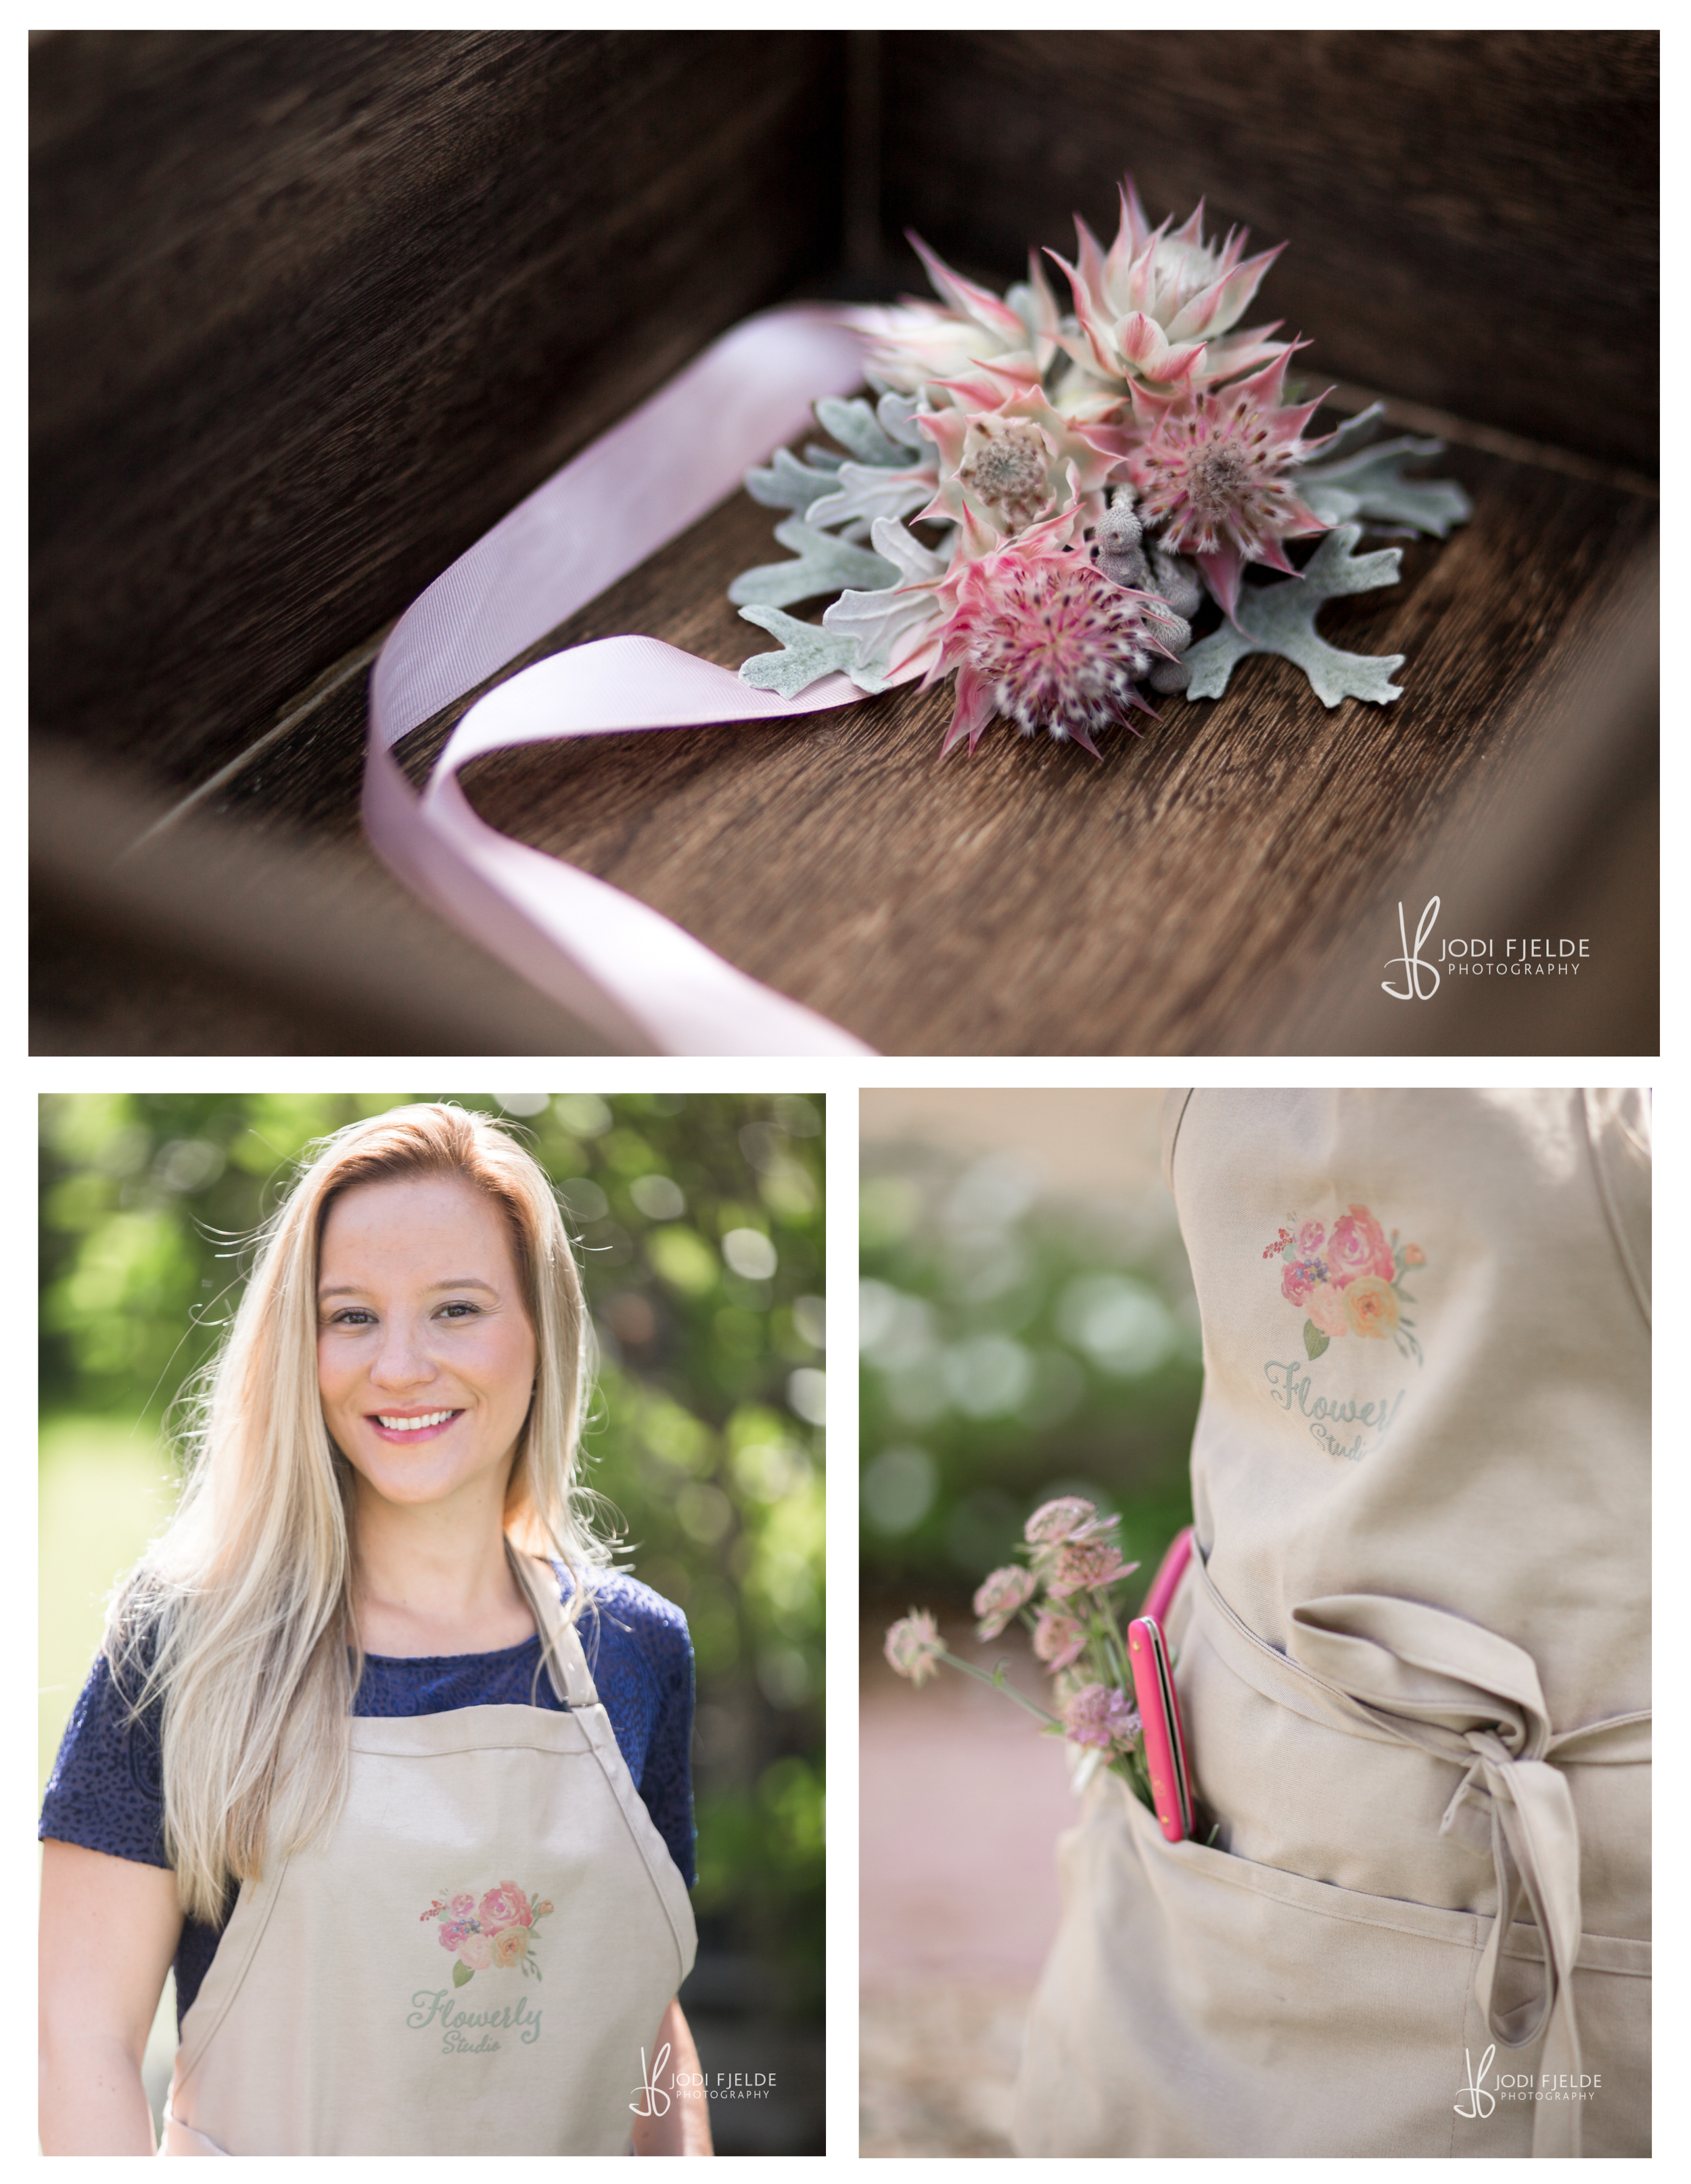 Parkland_Commercial_Business_Branding_Photography_Flowerly Studio_Jodi_Fjelde_Photogrpahy_6.jpg